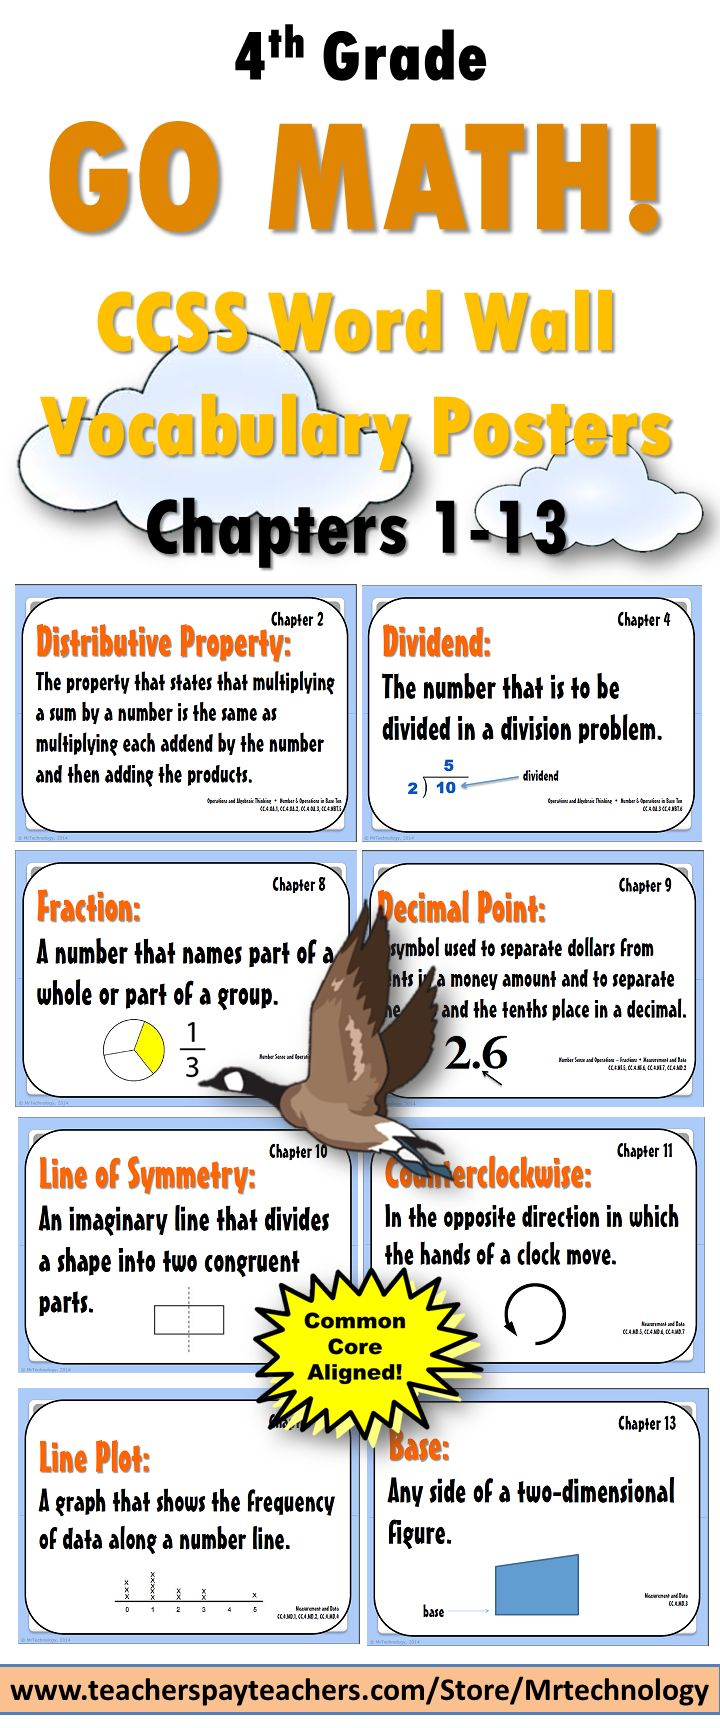 Save yourself loads of time with this visually stunning 112-page Go Math! Grade 4 Vocabulary Posters bundle! Includes each major vocabulary word that students will be introduced to with definitions for ALL 13 CHAPTERS in the Go Math! program. Perfect for hanging up on a Math Word Wall or in and around Math Centers!  To be used with the Go Math! program but can be used for any Grade 4 Math Vocabulary Word Walls because they are Common Core Aligned.